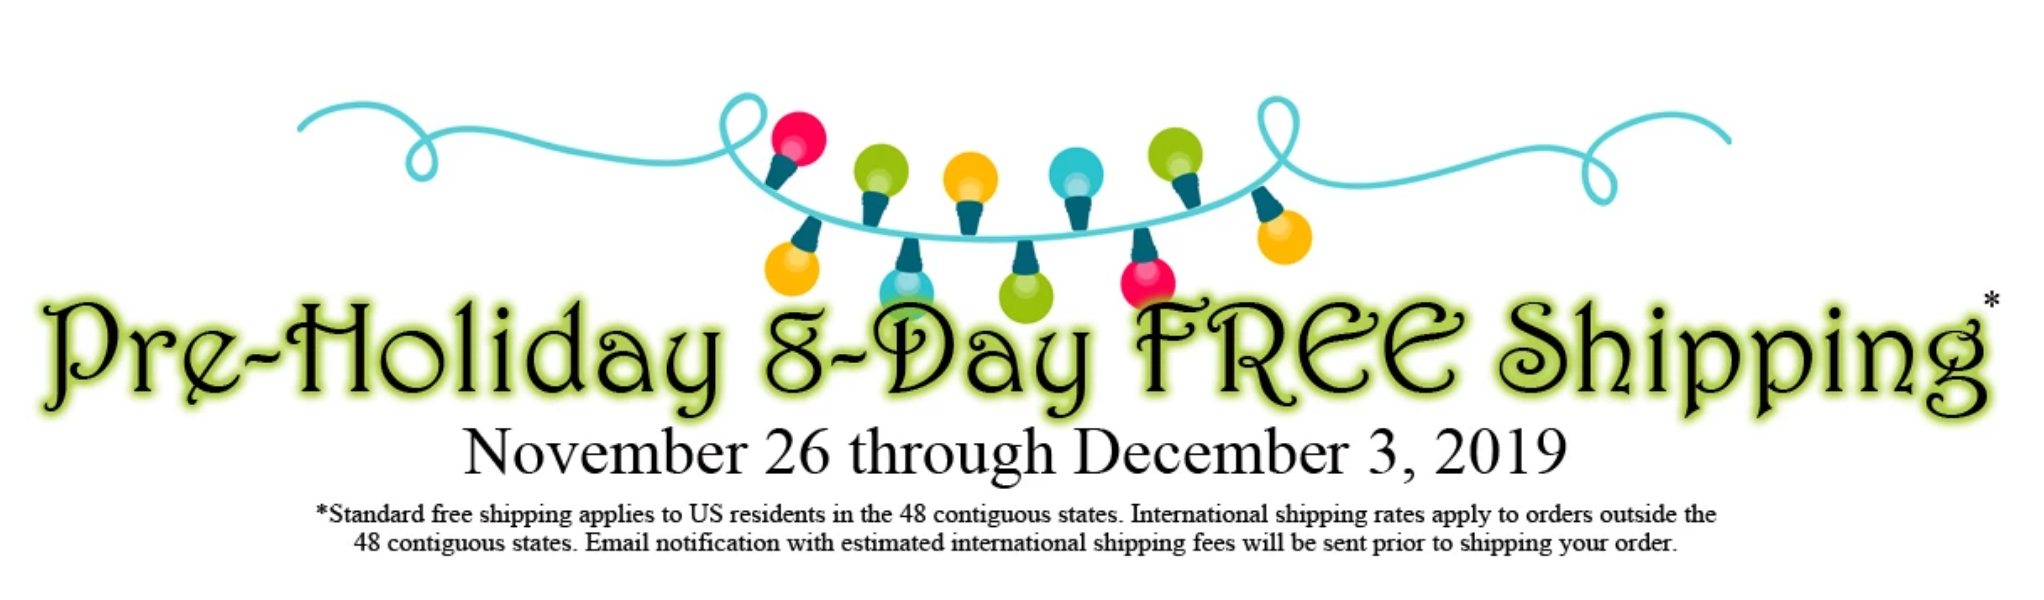 8-Day Pre Holidays Sale Nov. 26 through Dec 3, 2019 at shopnzp.com